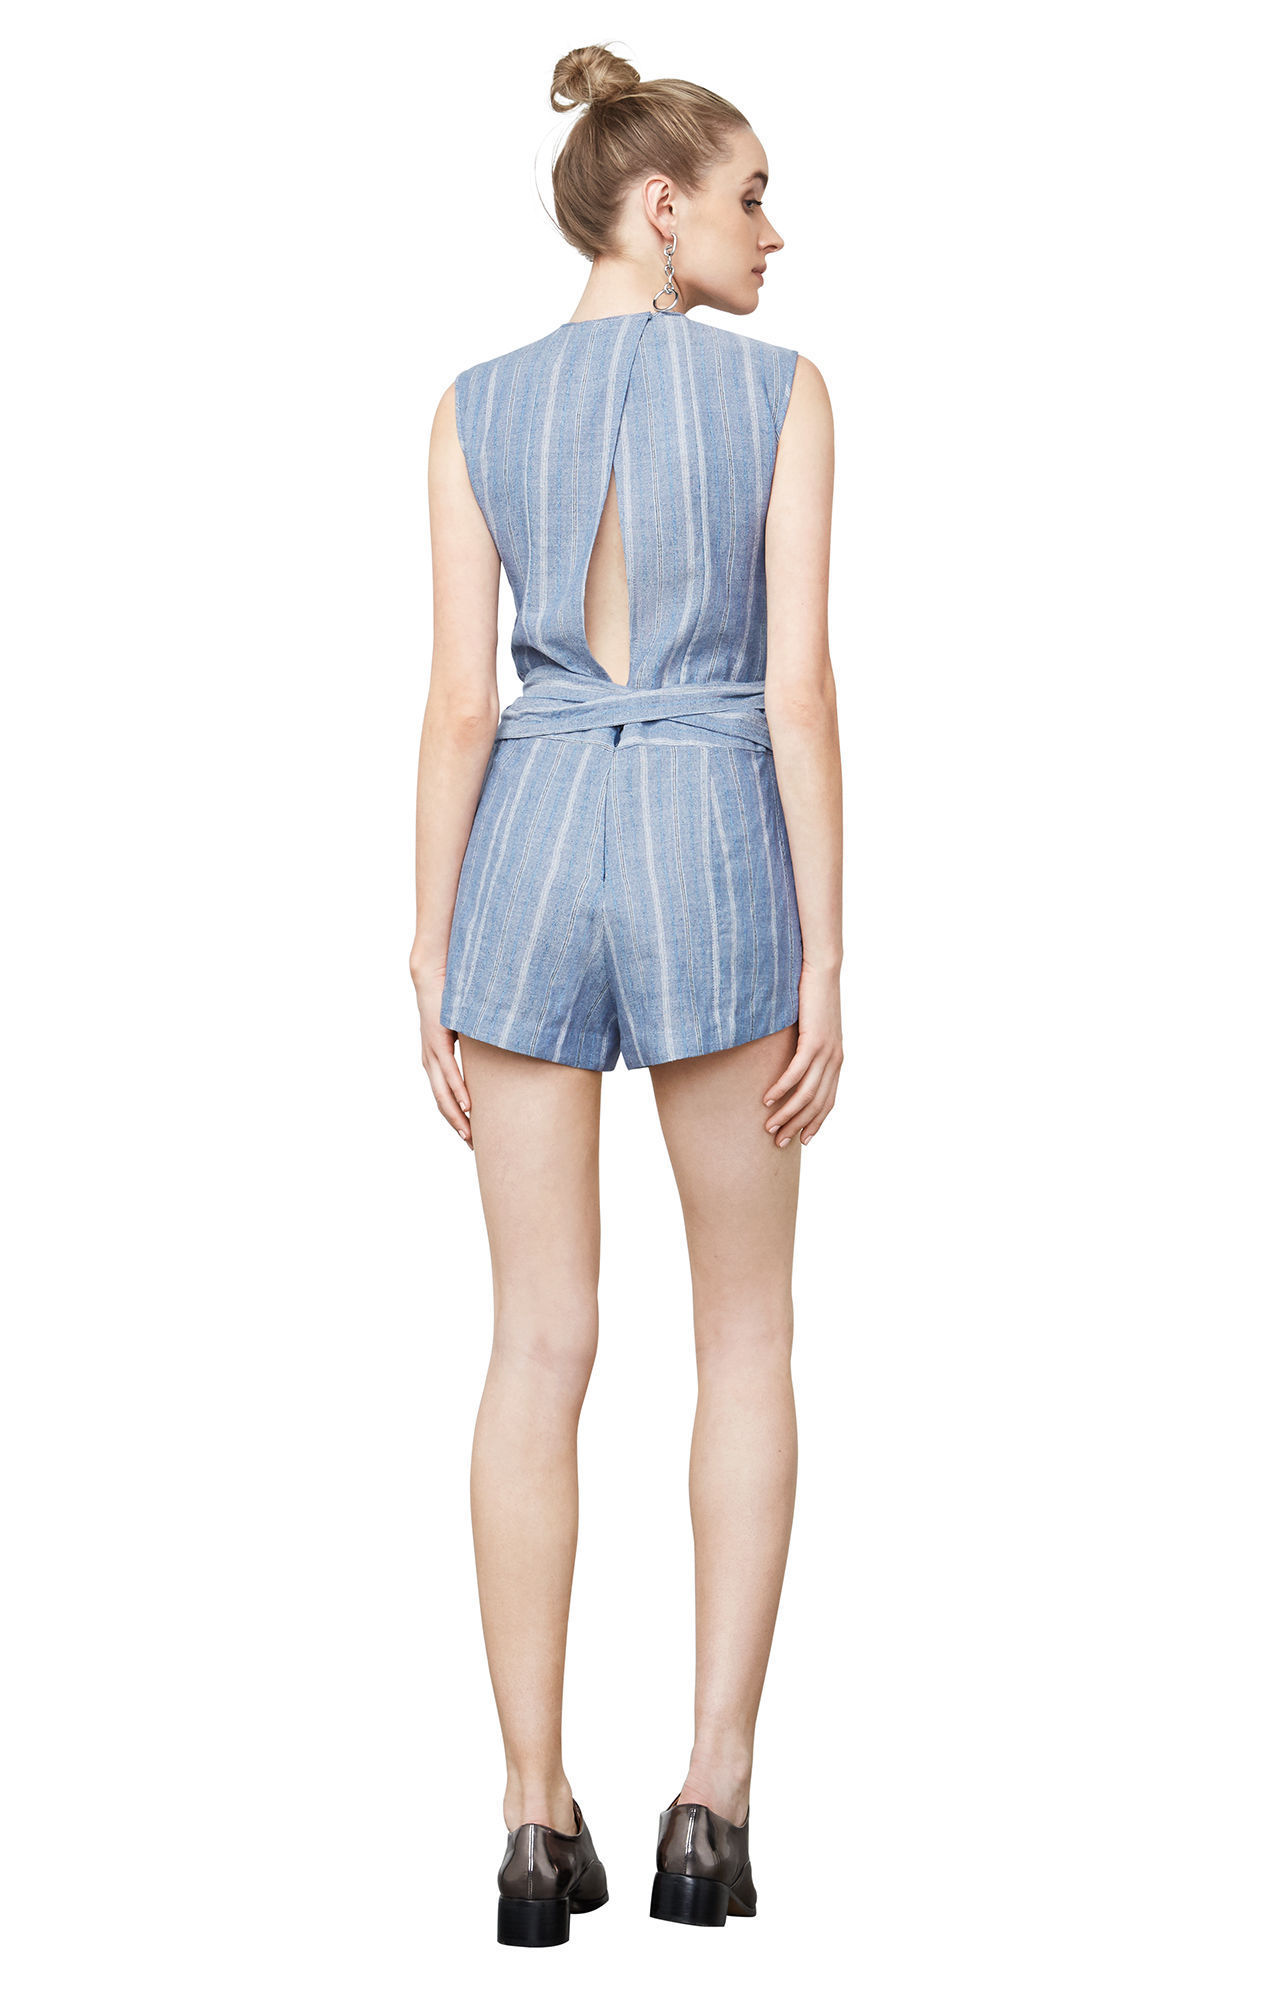 【BCBG MAXAZRIA】ロンパース♪ Lexxi Striped Romper